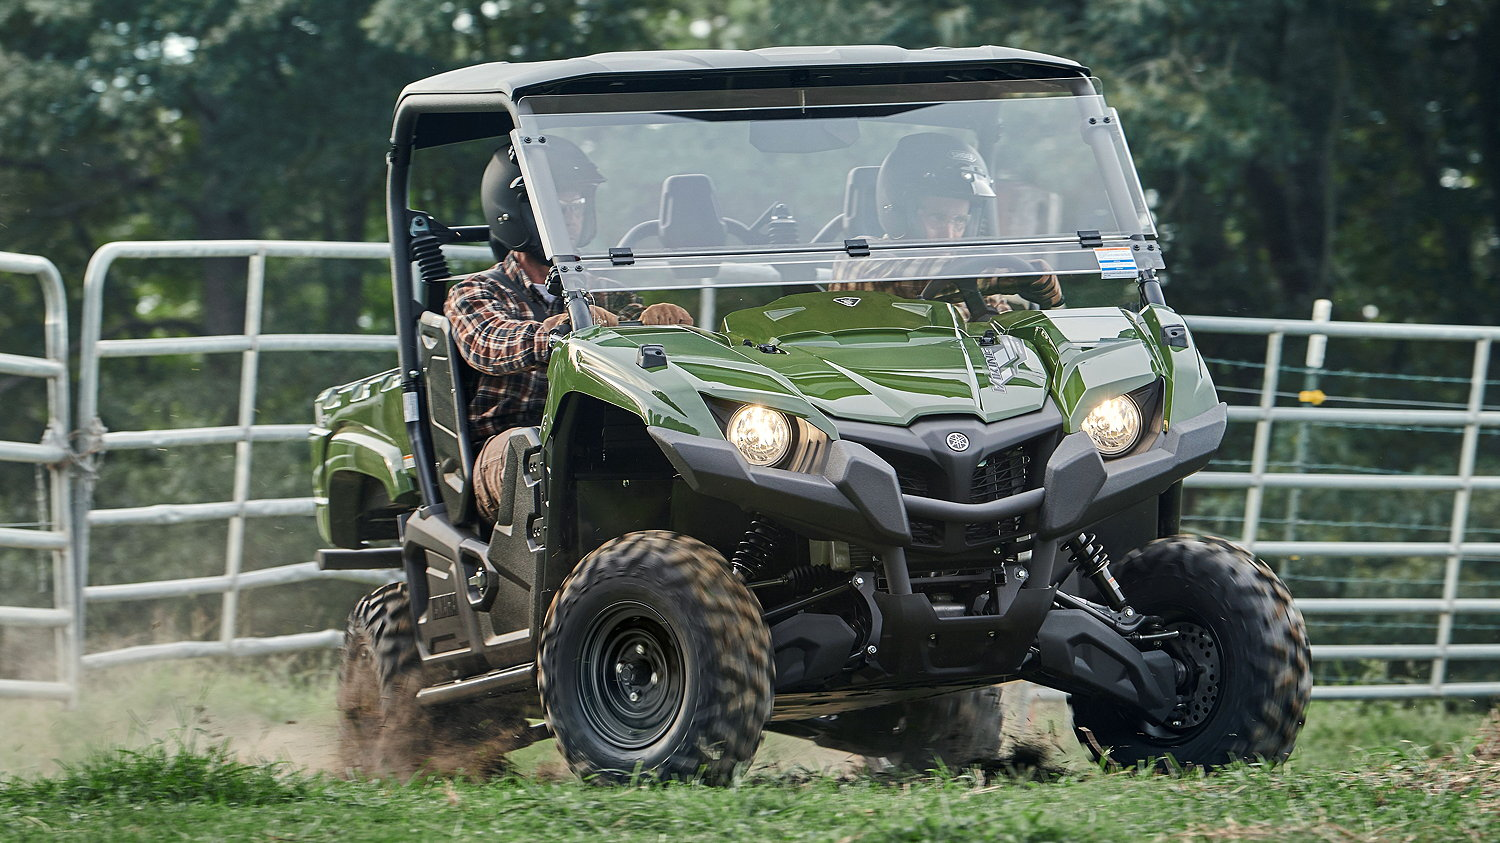 Yamaha now offers the three seat Viking and four seat Wolverine RMAX